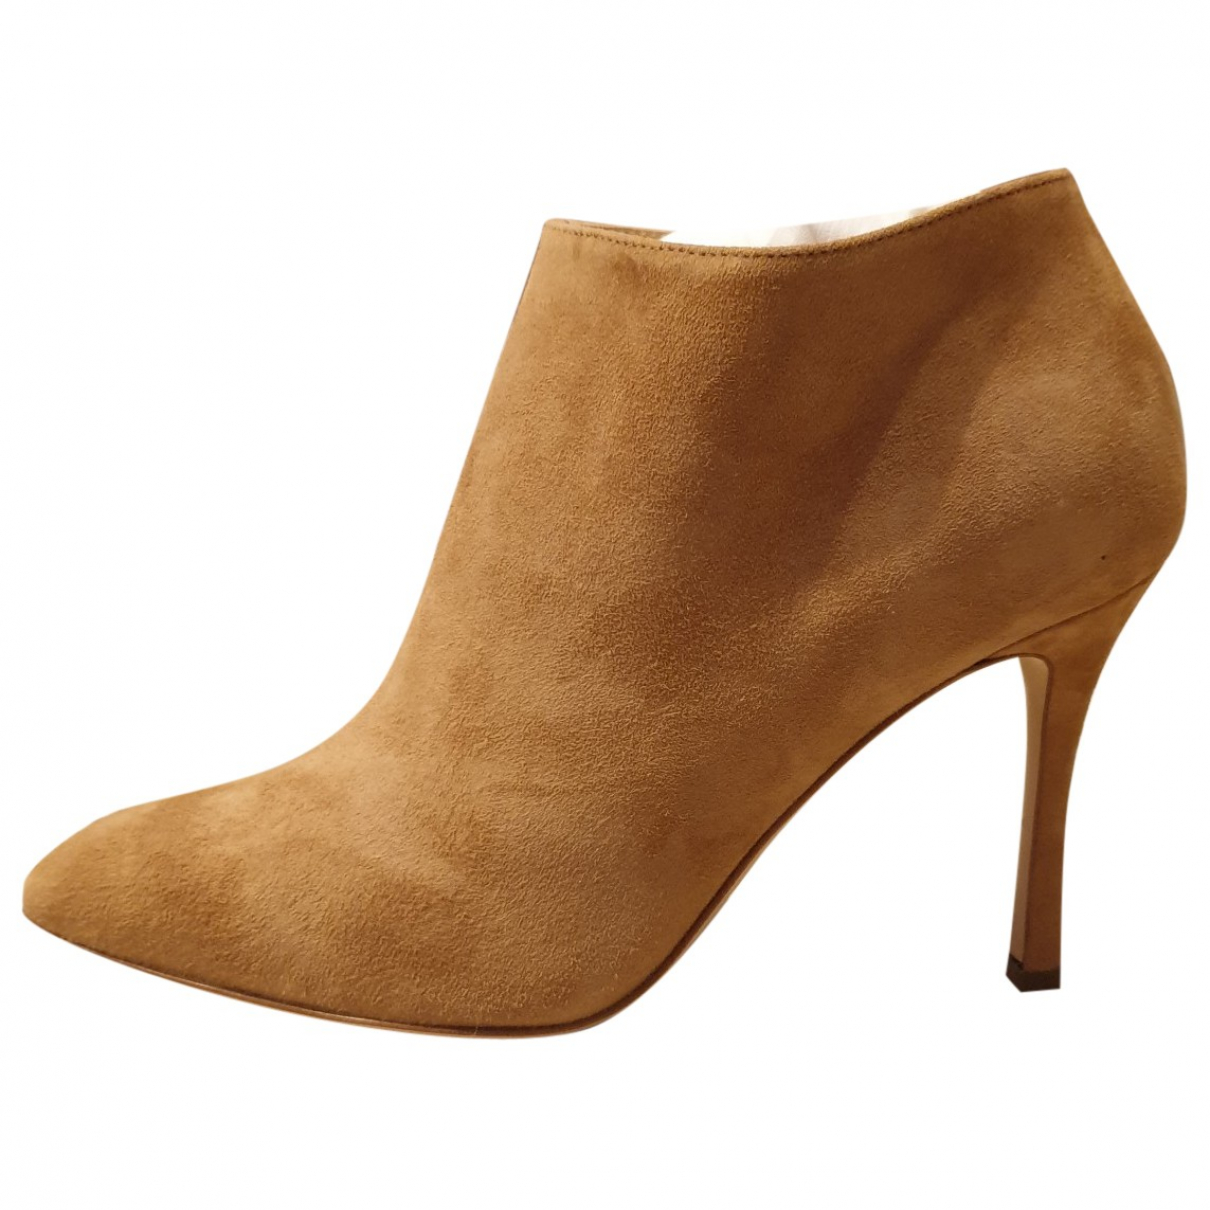 Sergio Rossi \N Beige Suede Ankle boots for Women 37 IT